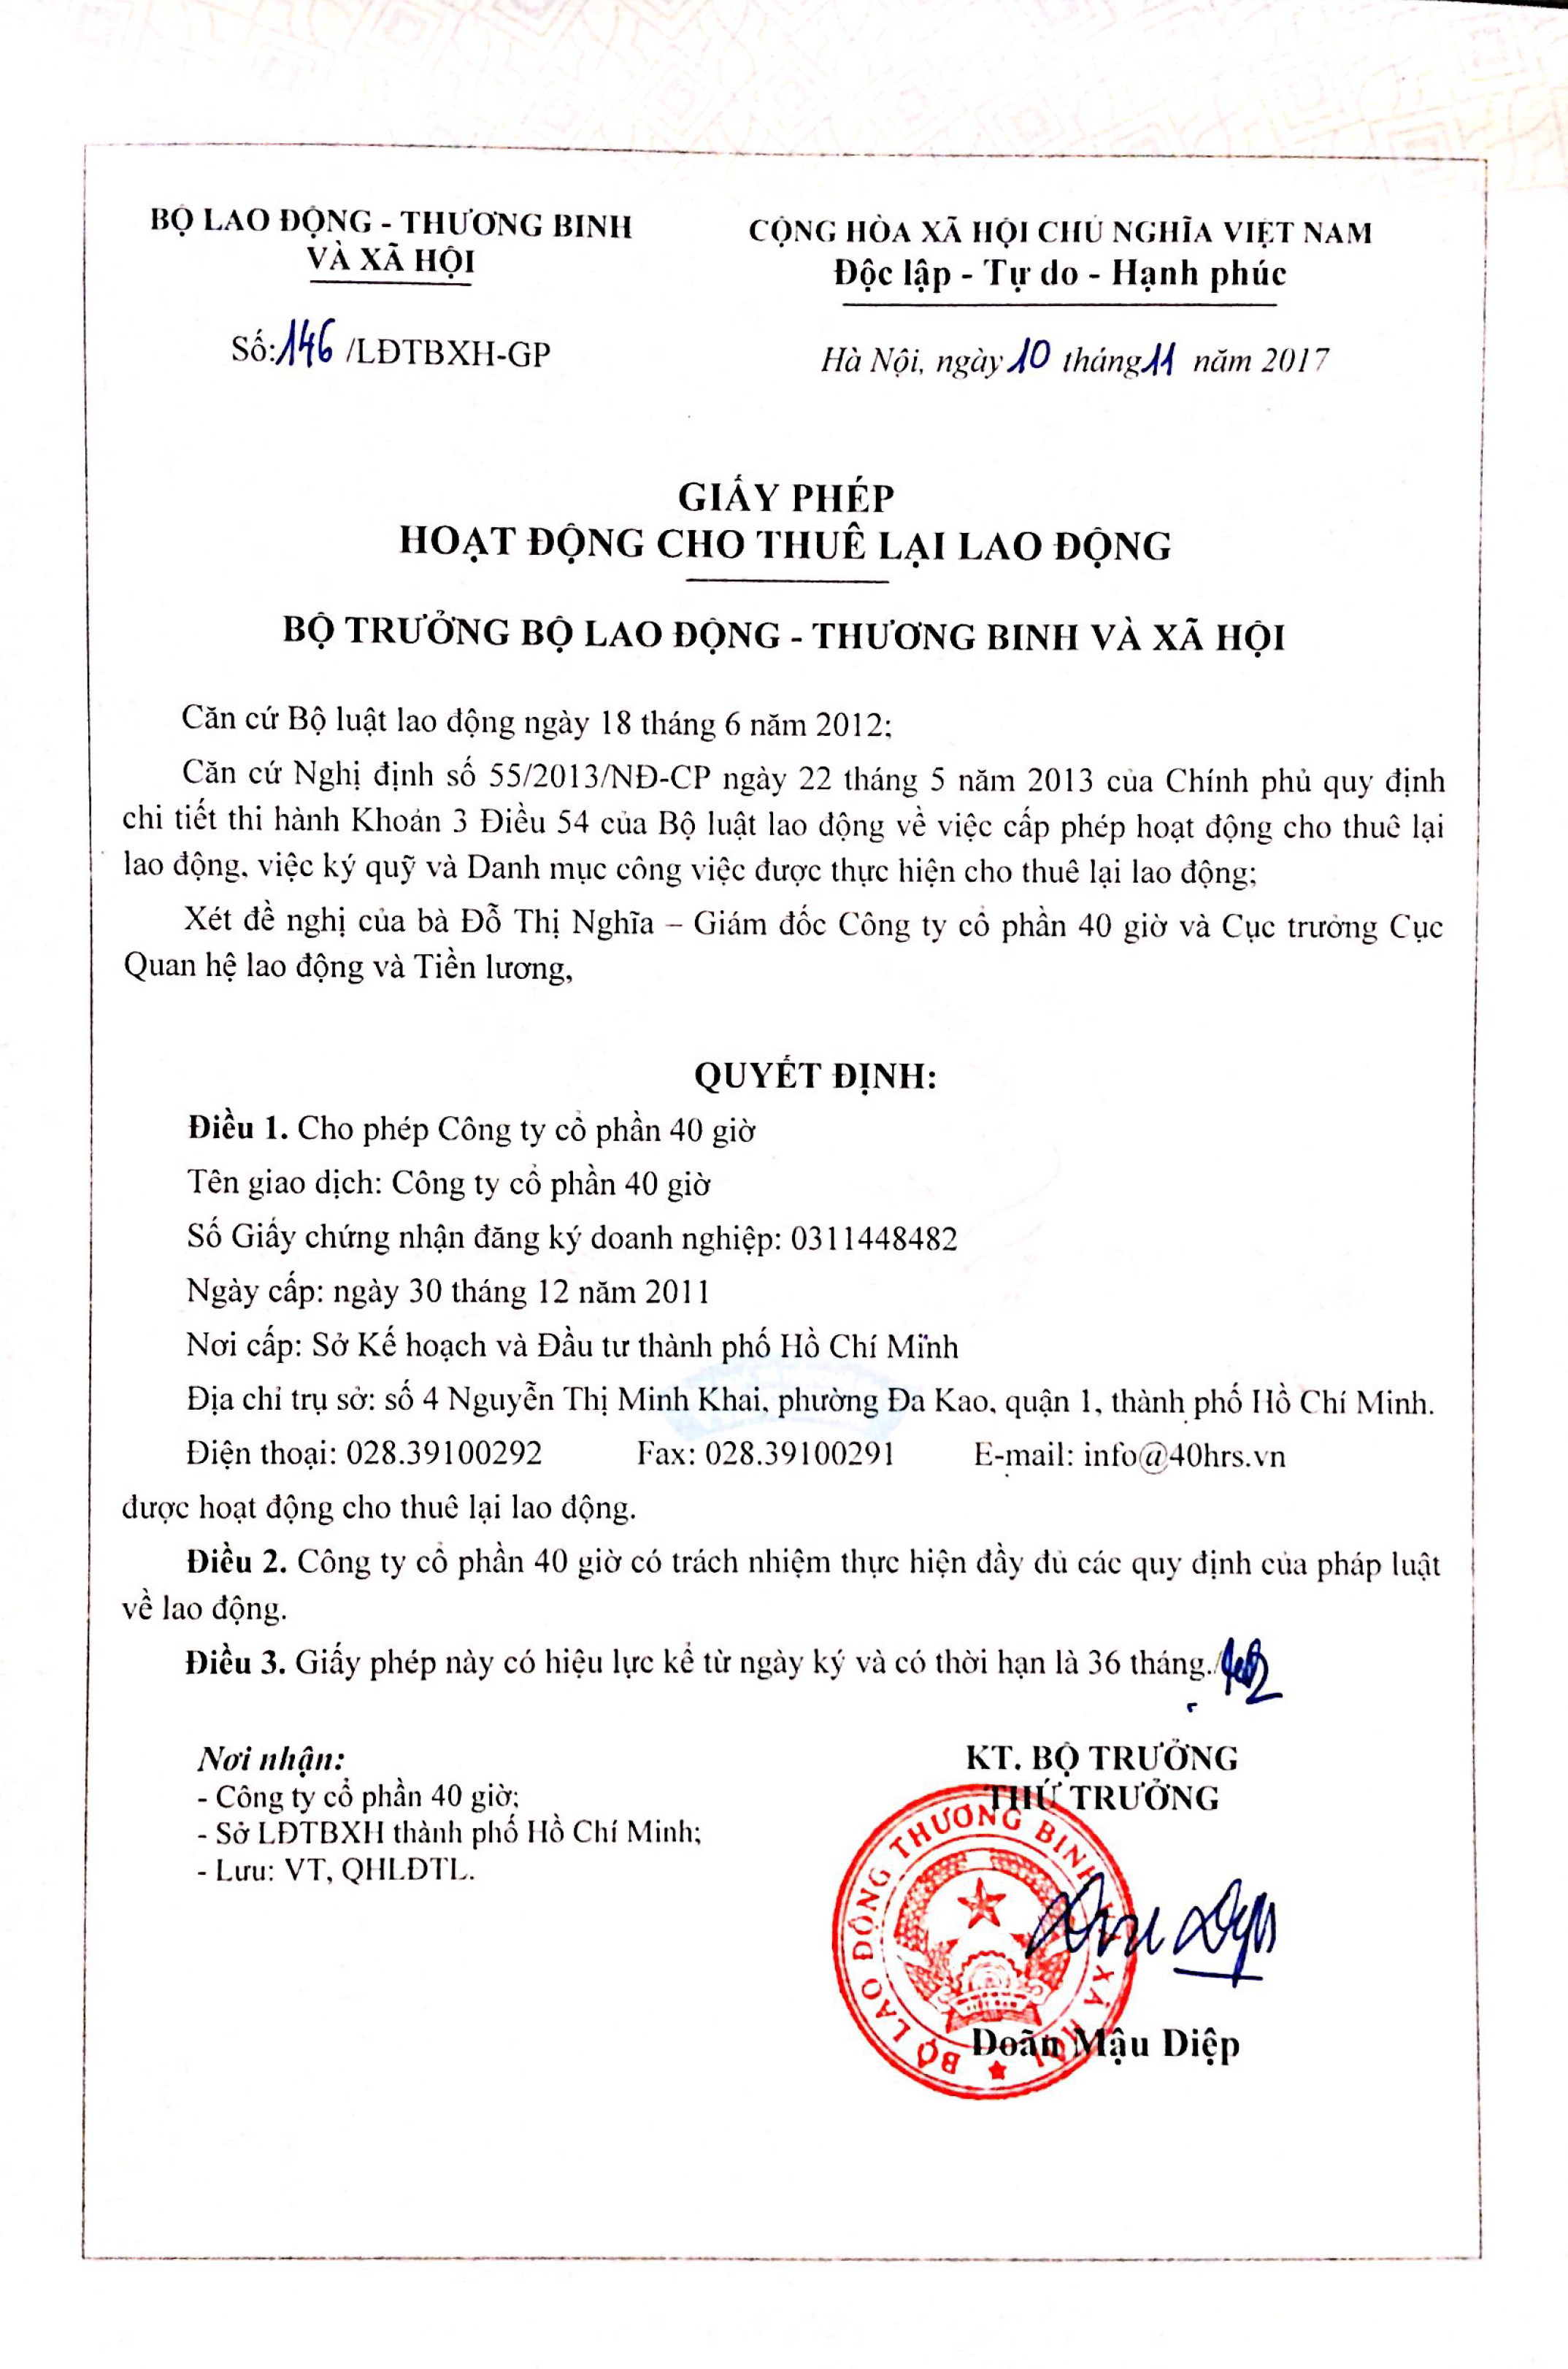 giay-phep-hoat-dong-cho-thue-lai-lao-dong-cong-ty-co-phan-40h